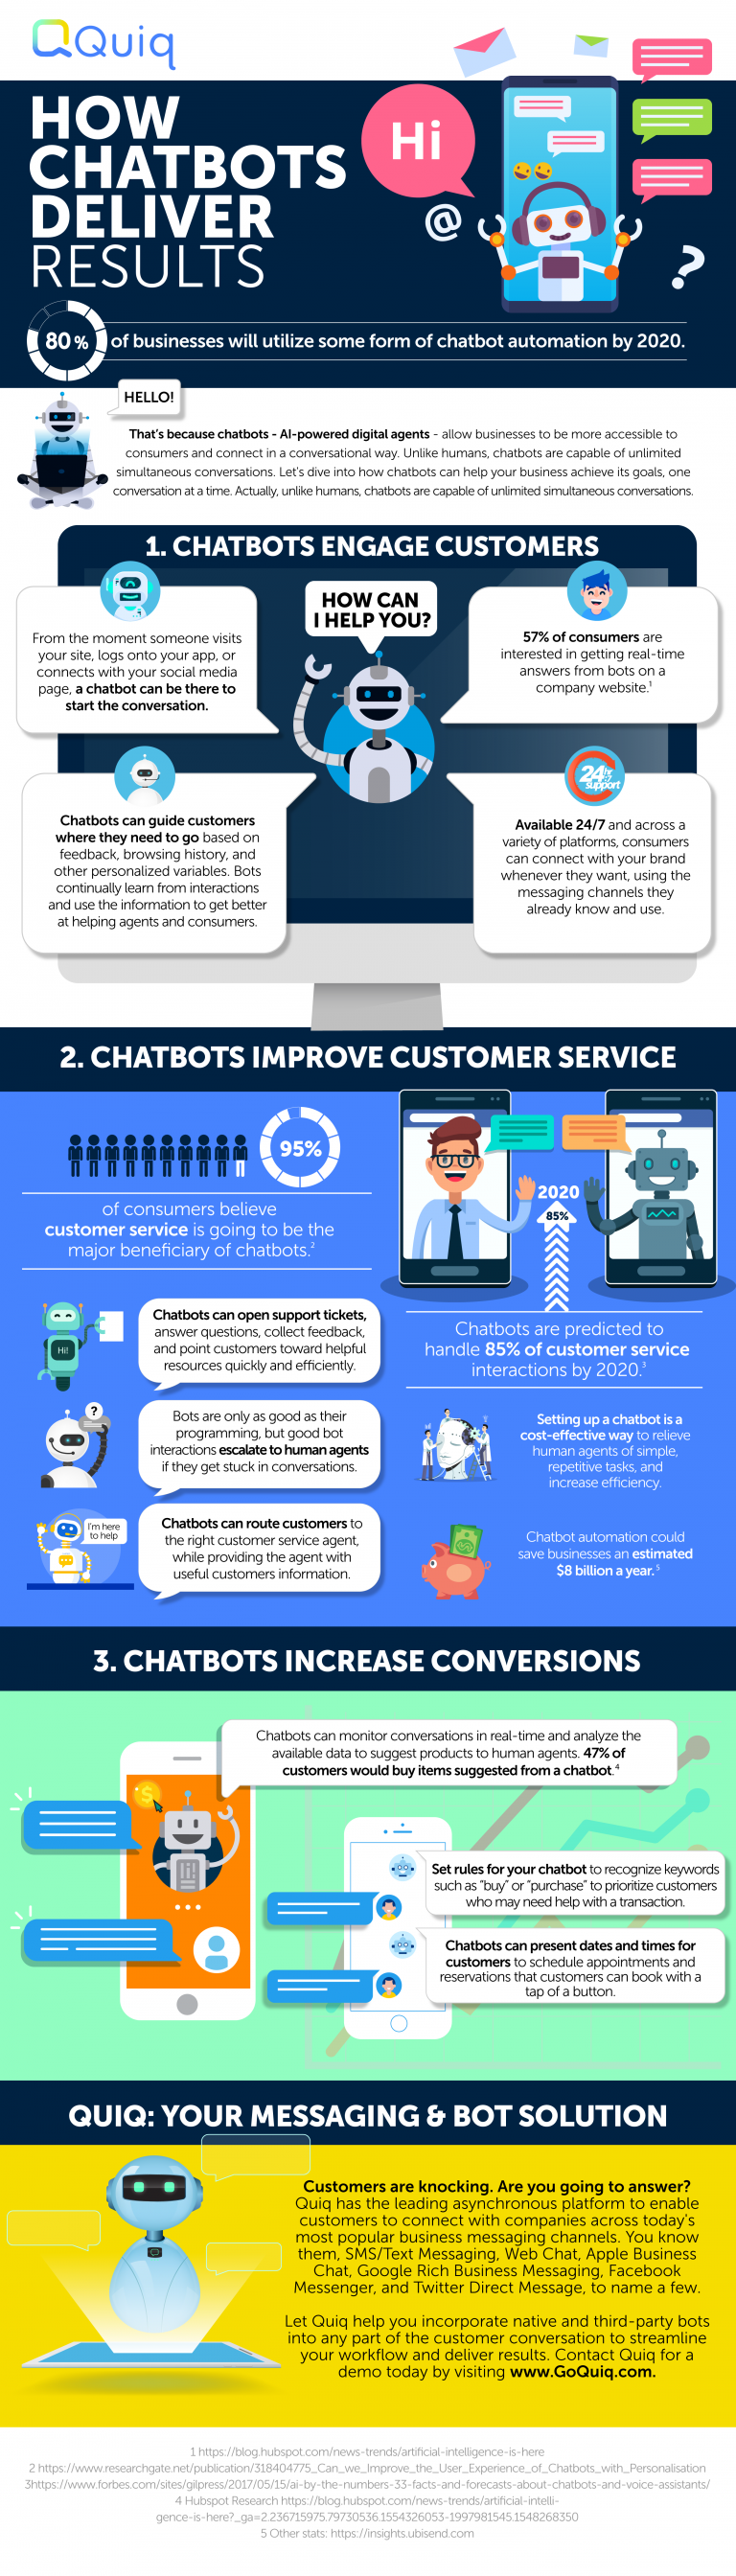 Chatbots – augmenting NOT replacing the human workforce